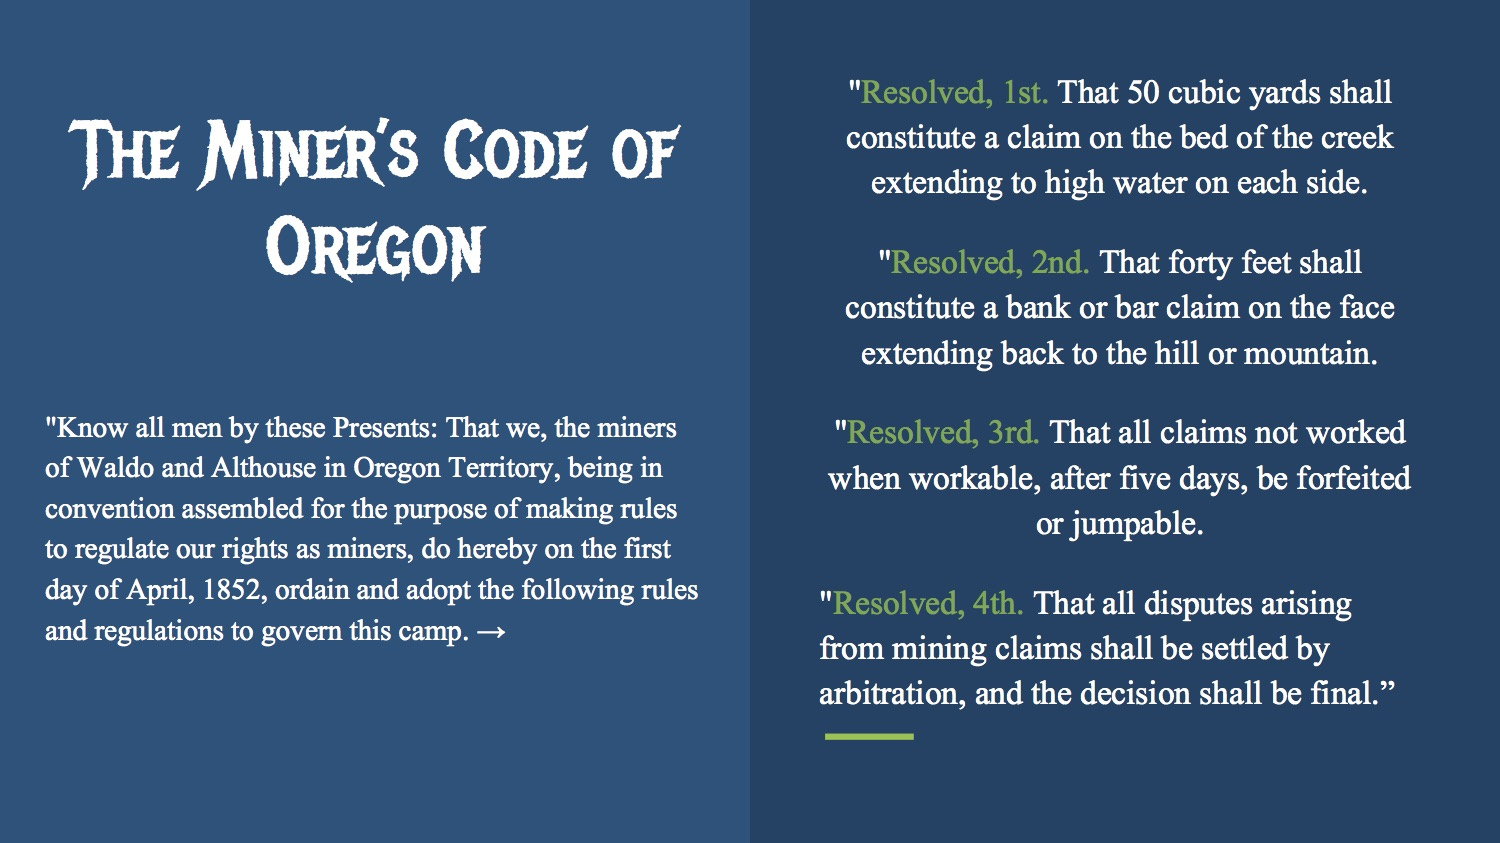 The Miner's Code of Oregon